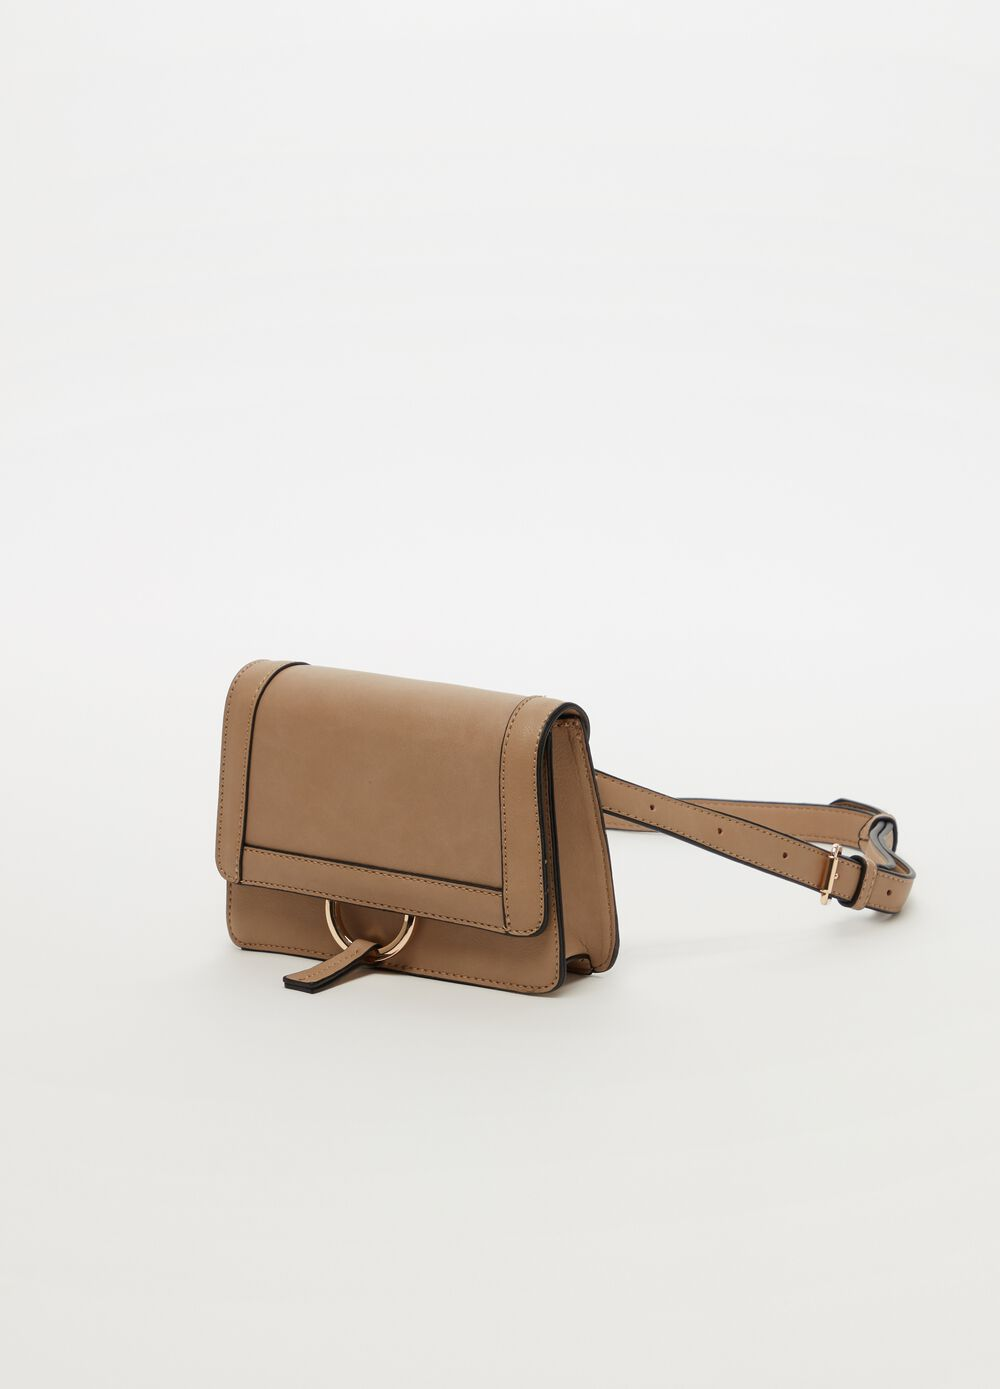 Structured bum bag with belt